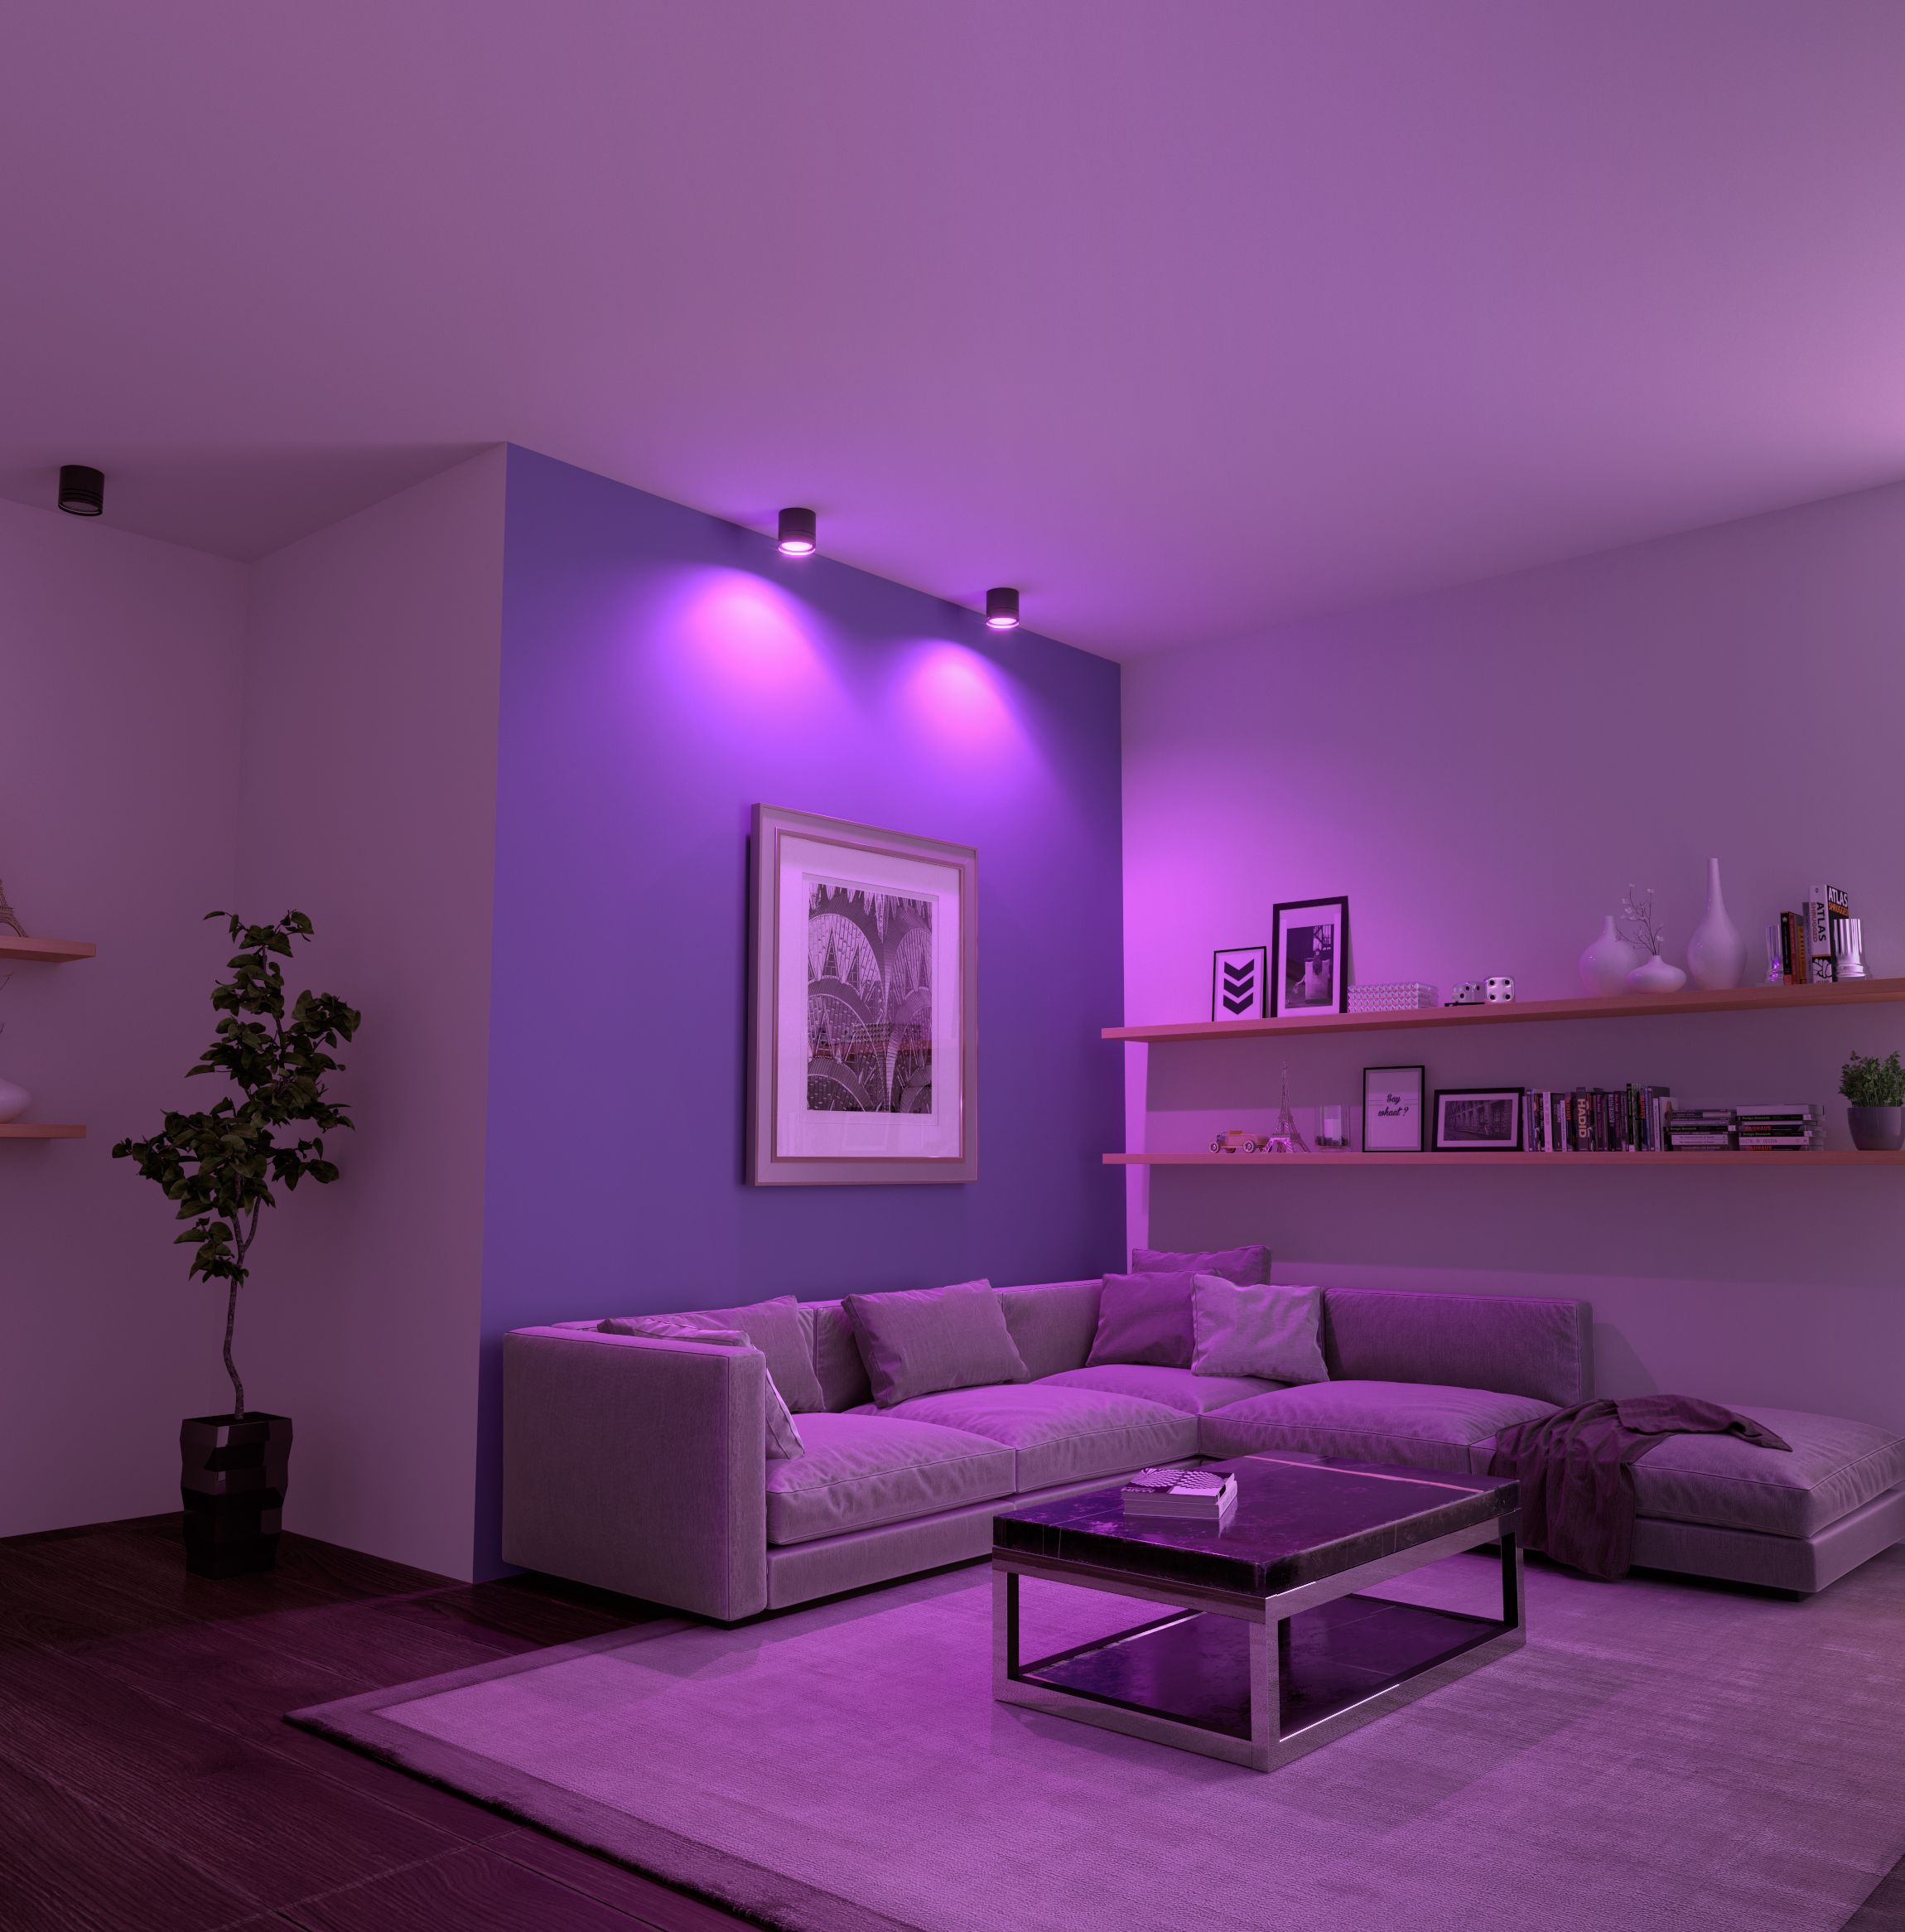 2 Multicolor Led Bulbs Color Changing Lights Future Bedroom Ideas Room Colors Colored light bulbs in bedroom